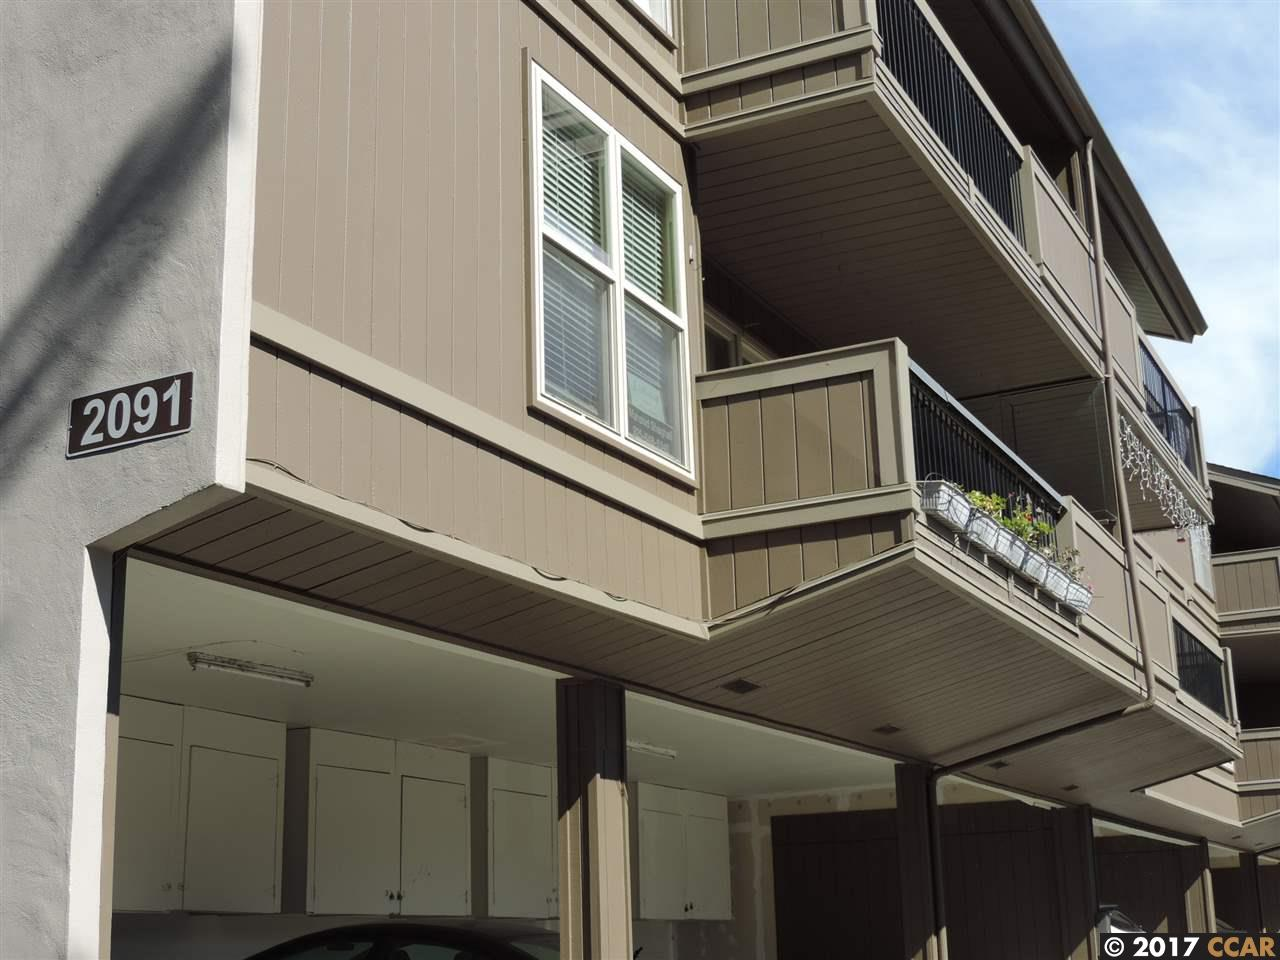 Condominium for Rent at 2091 ASCOT Drive 2091 ASCOT Drive Moraga, California 94556 United States